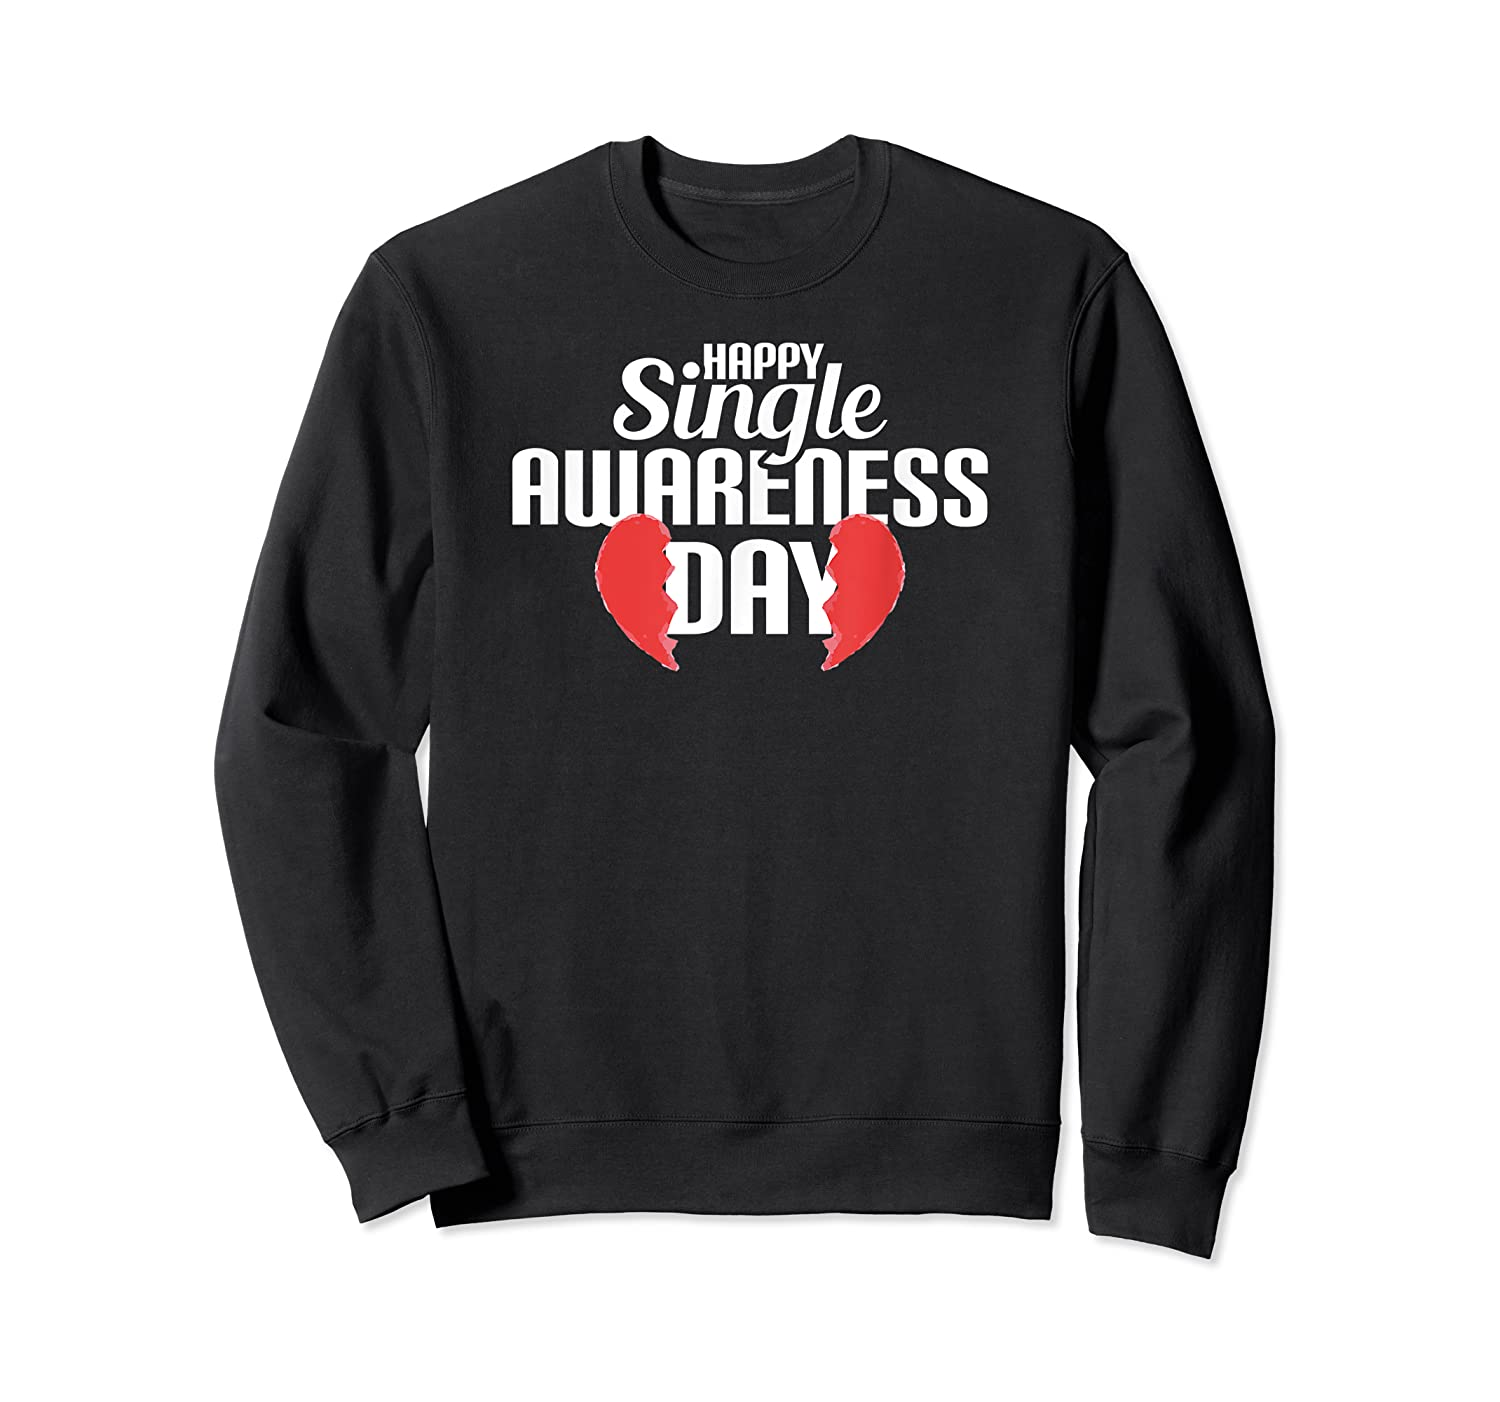 Funny Broken Hearted Perfect Attire Humorous Top Shirts Crewneck Sweater